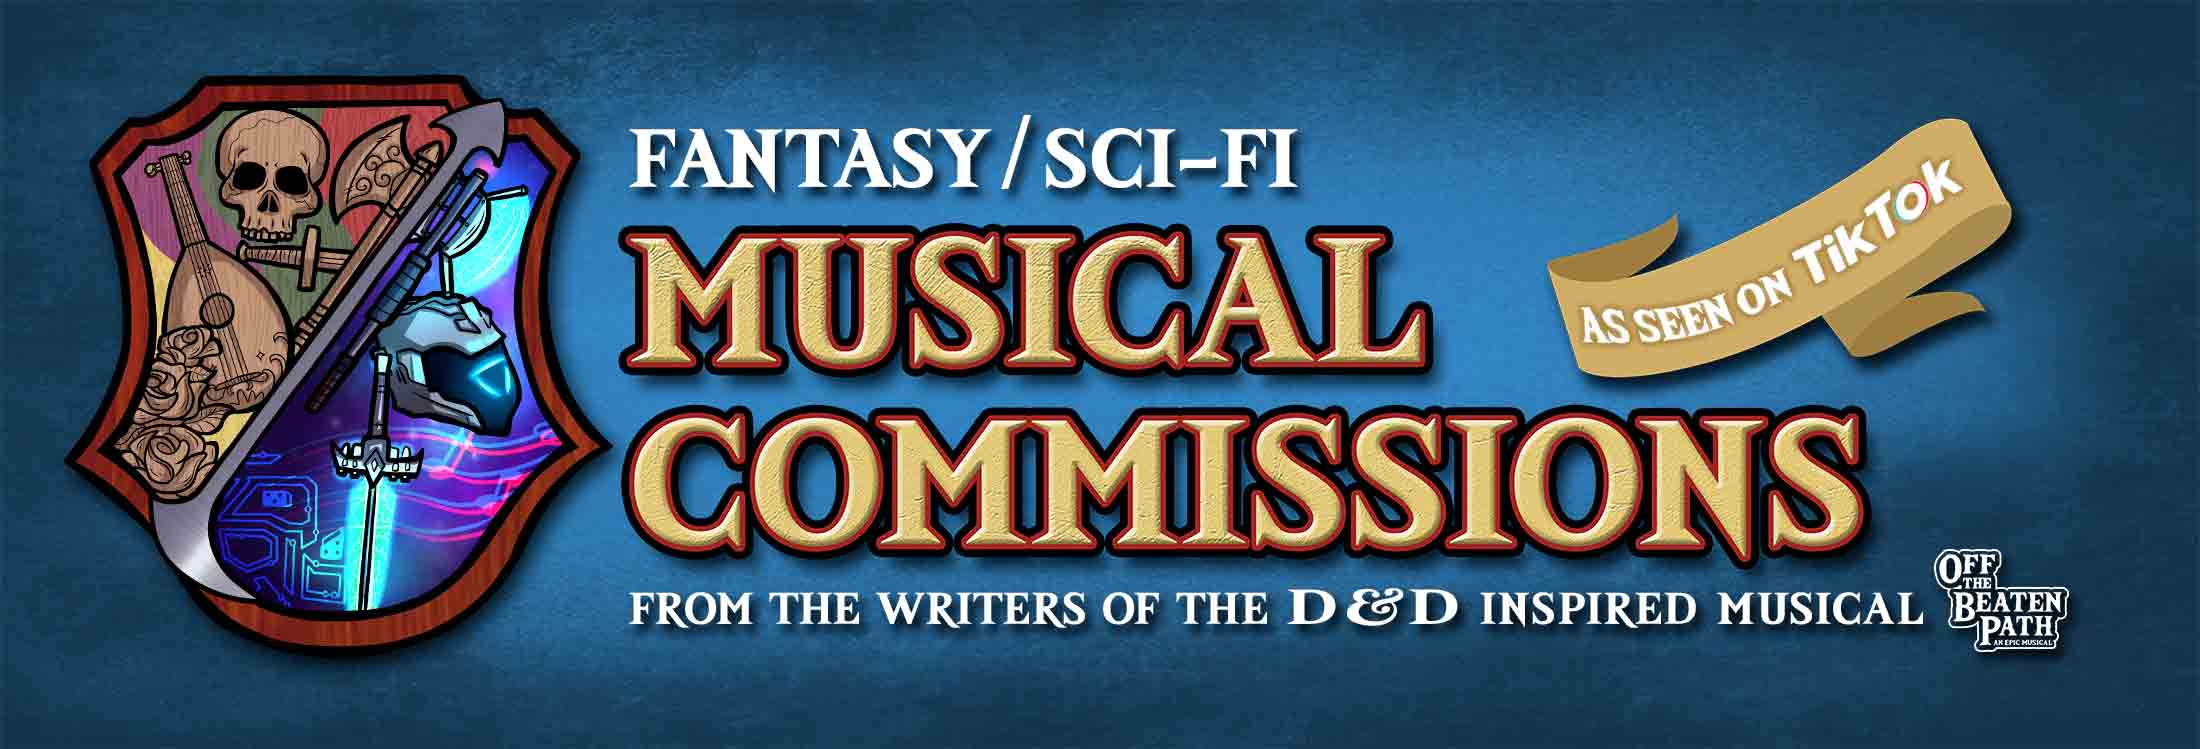 Sci-fi & Fantasy Musical Commisions